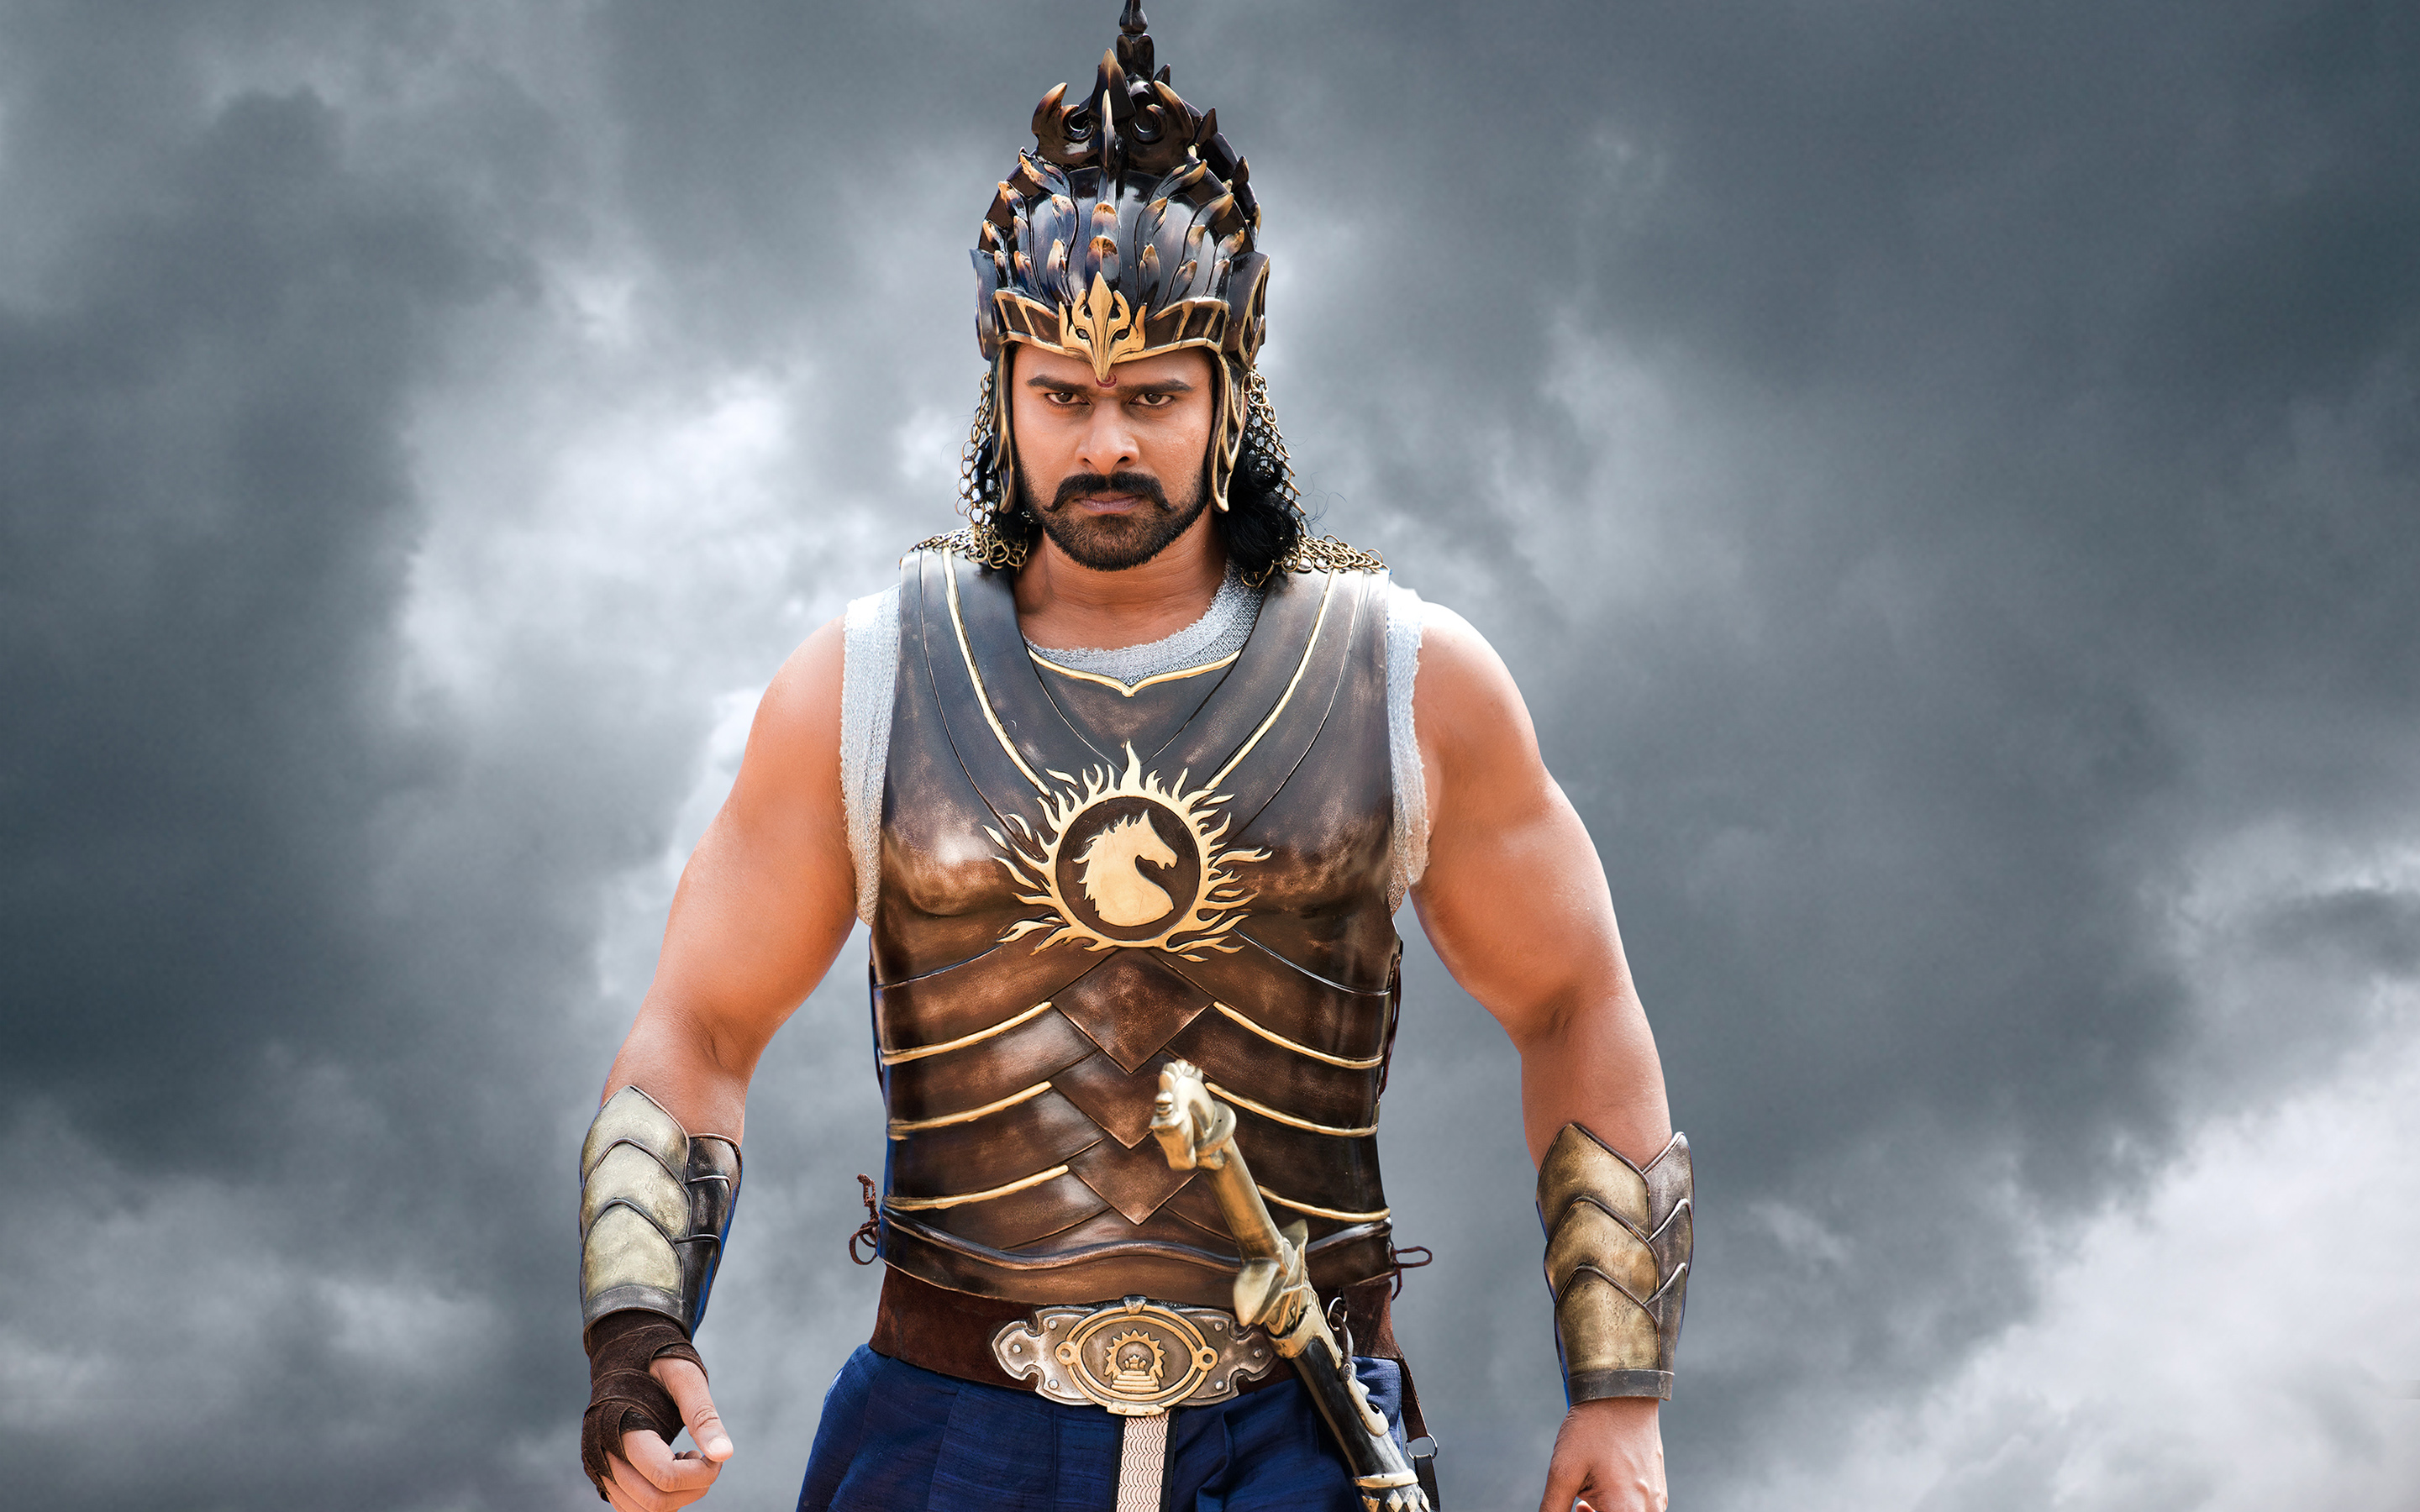 Bahubali Wallpaper Download